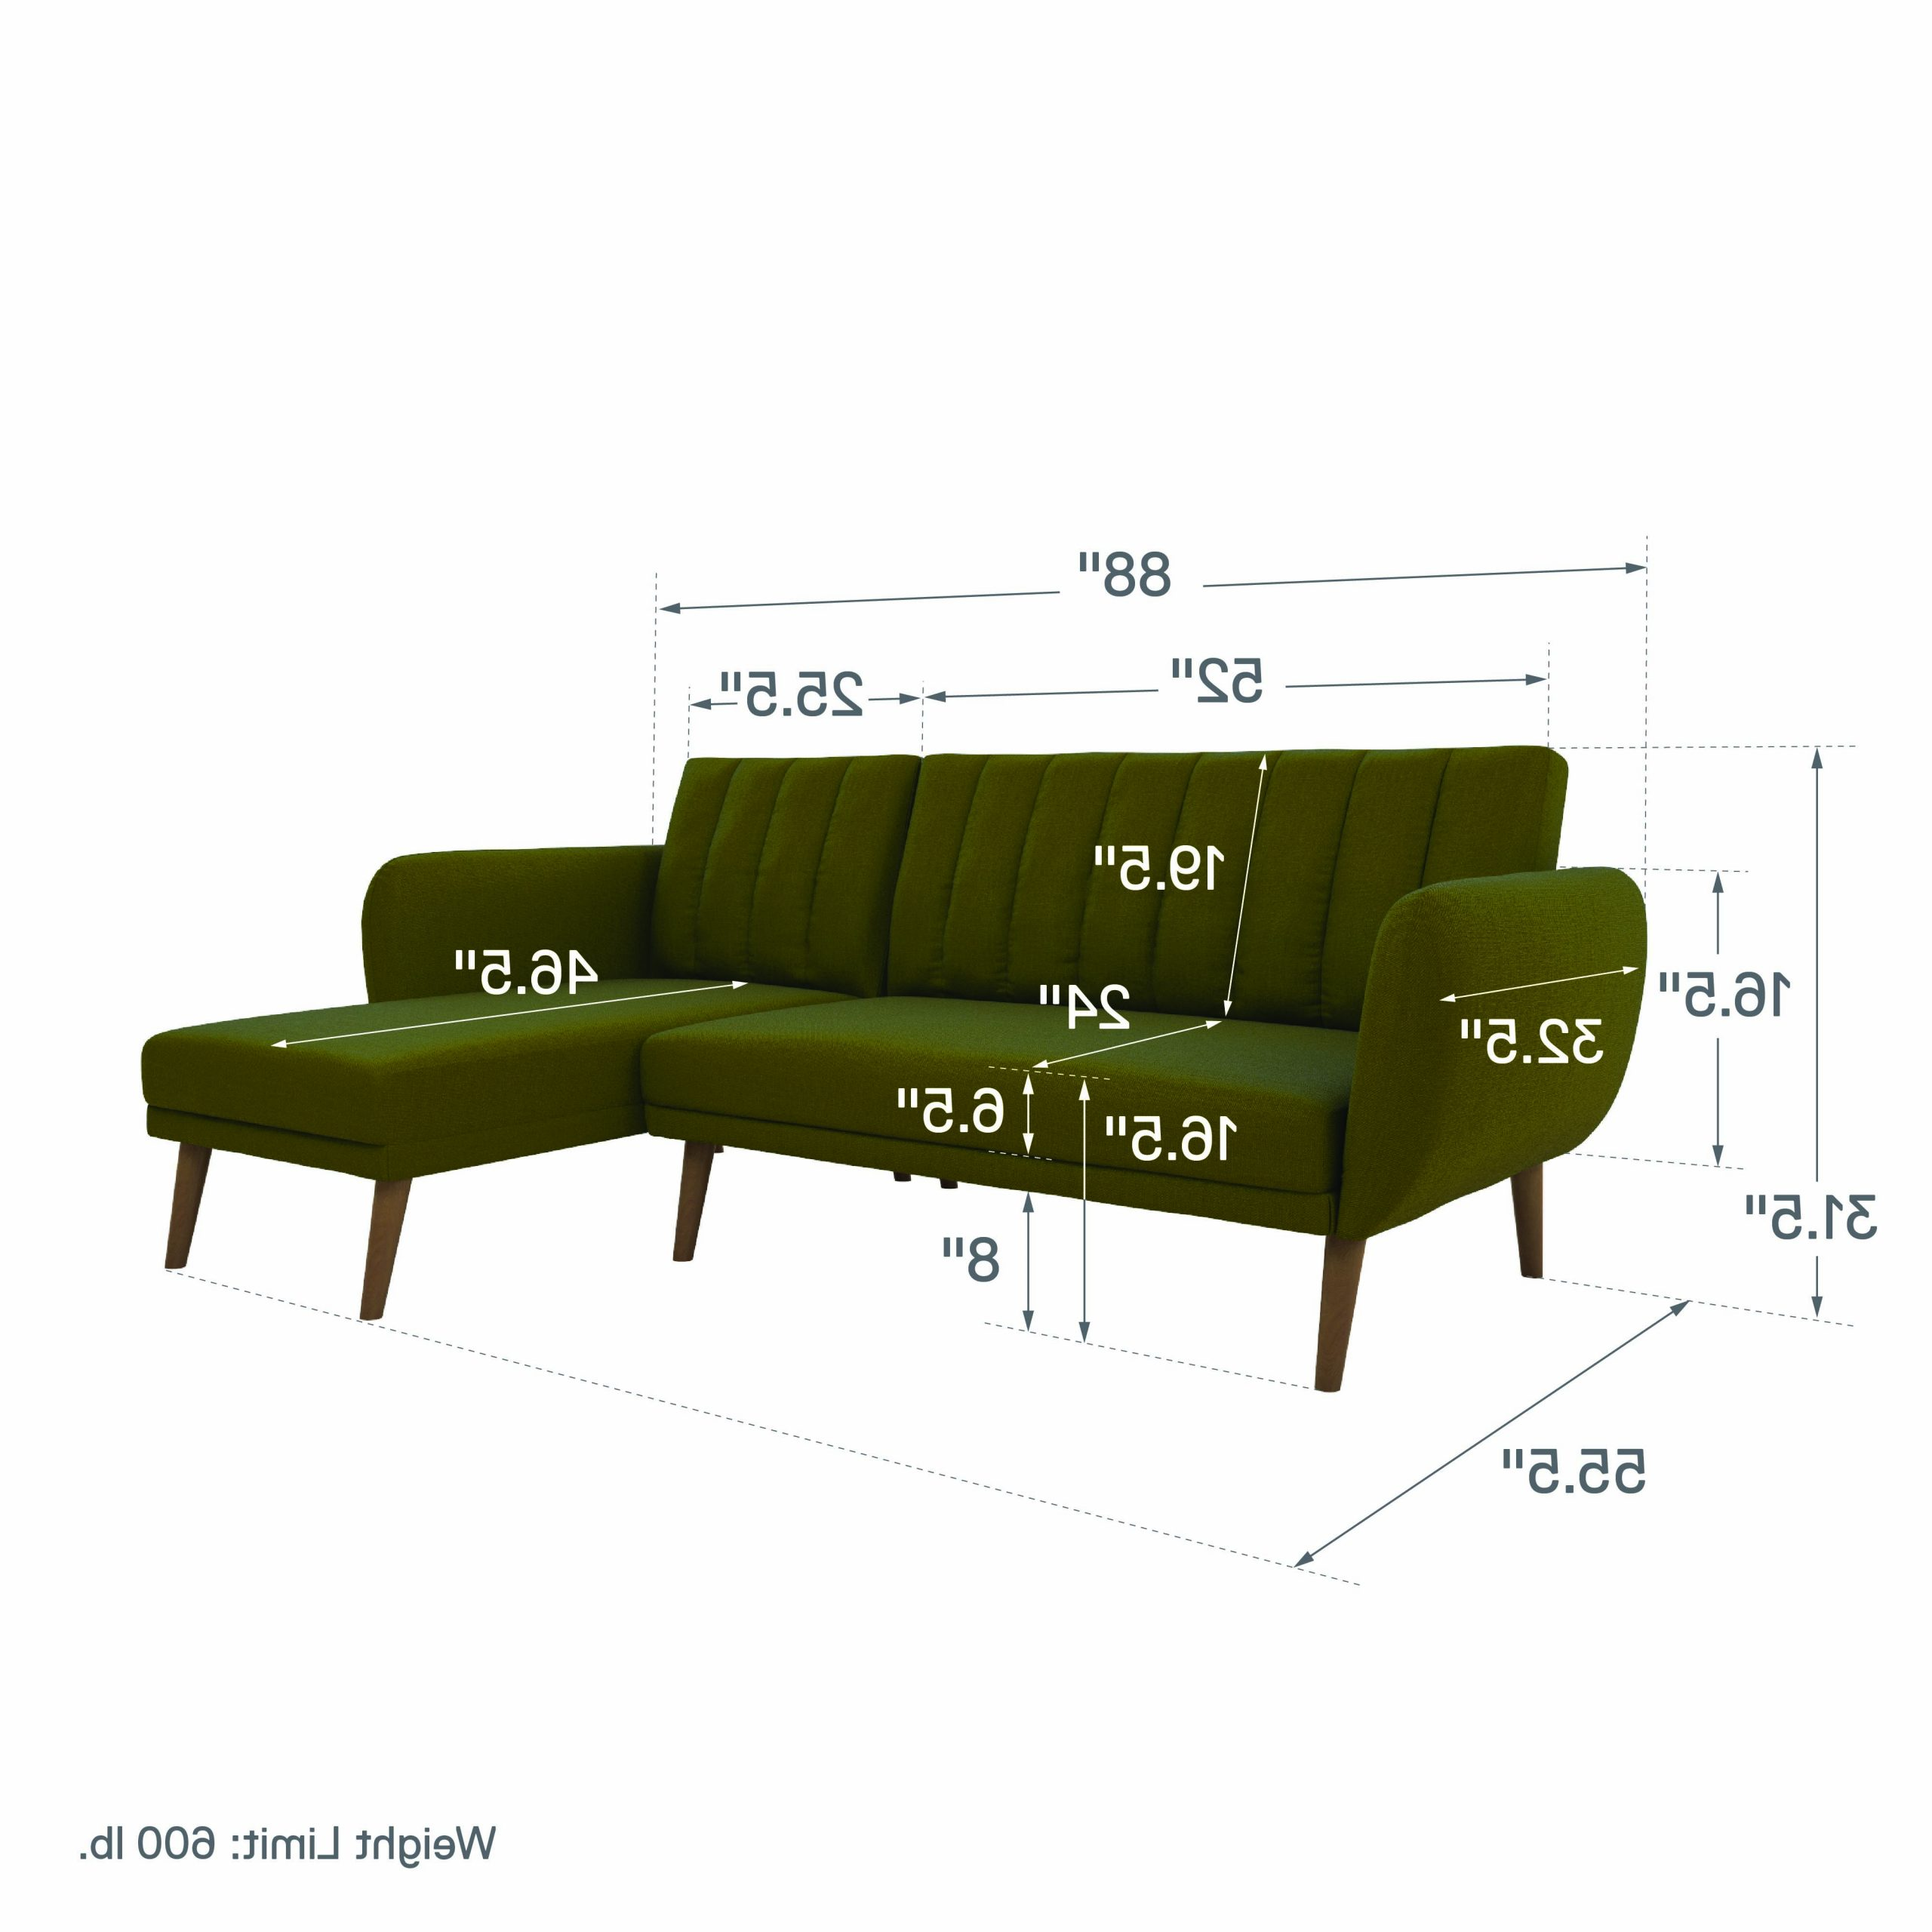 Dorel Home Products Dorel Brittany Sectional Sofa Bed Intended For Famous Brittany Sectional Futon Sofas (View 20 of 20)